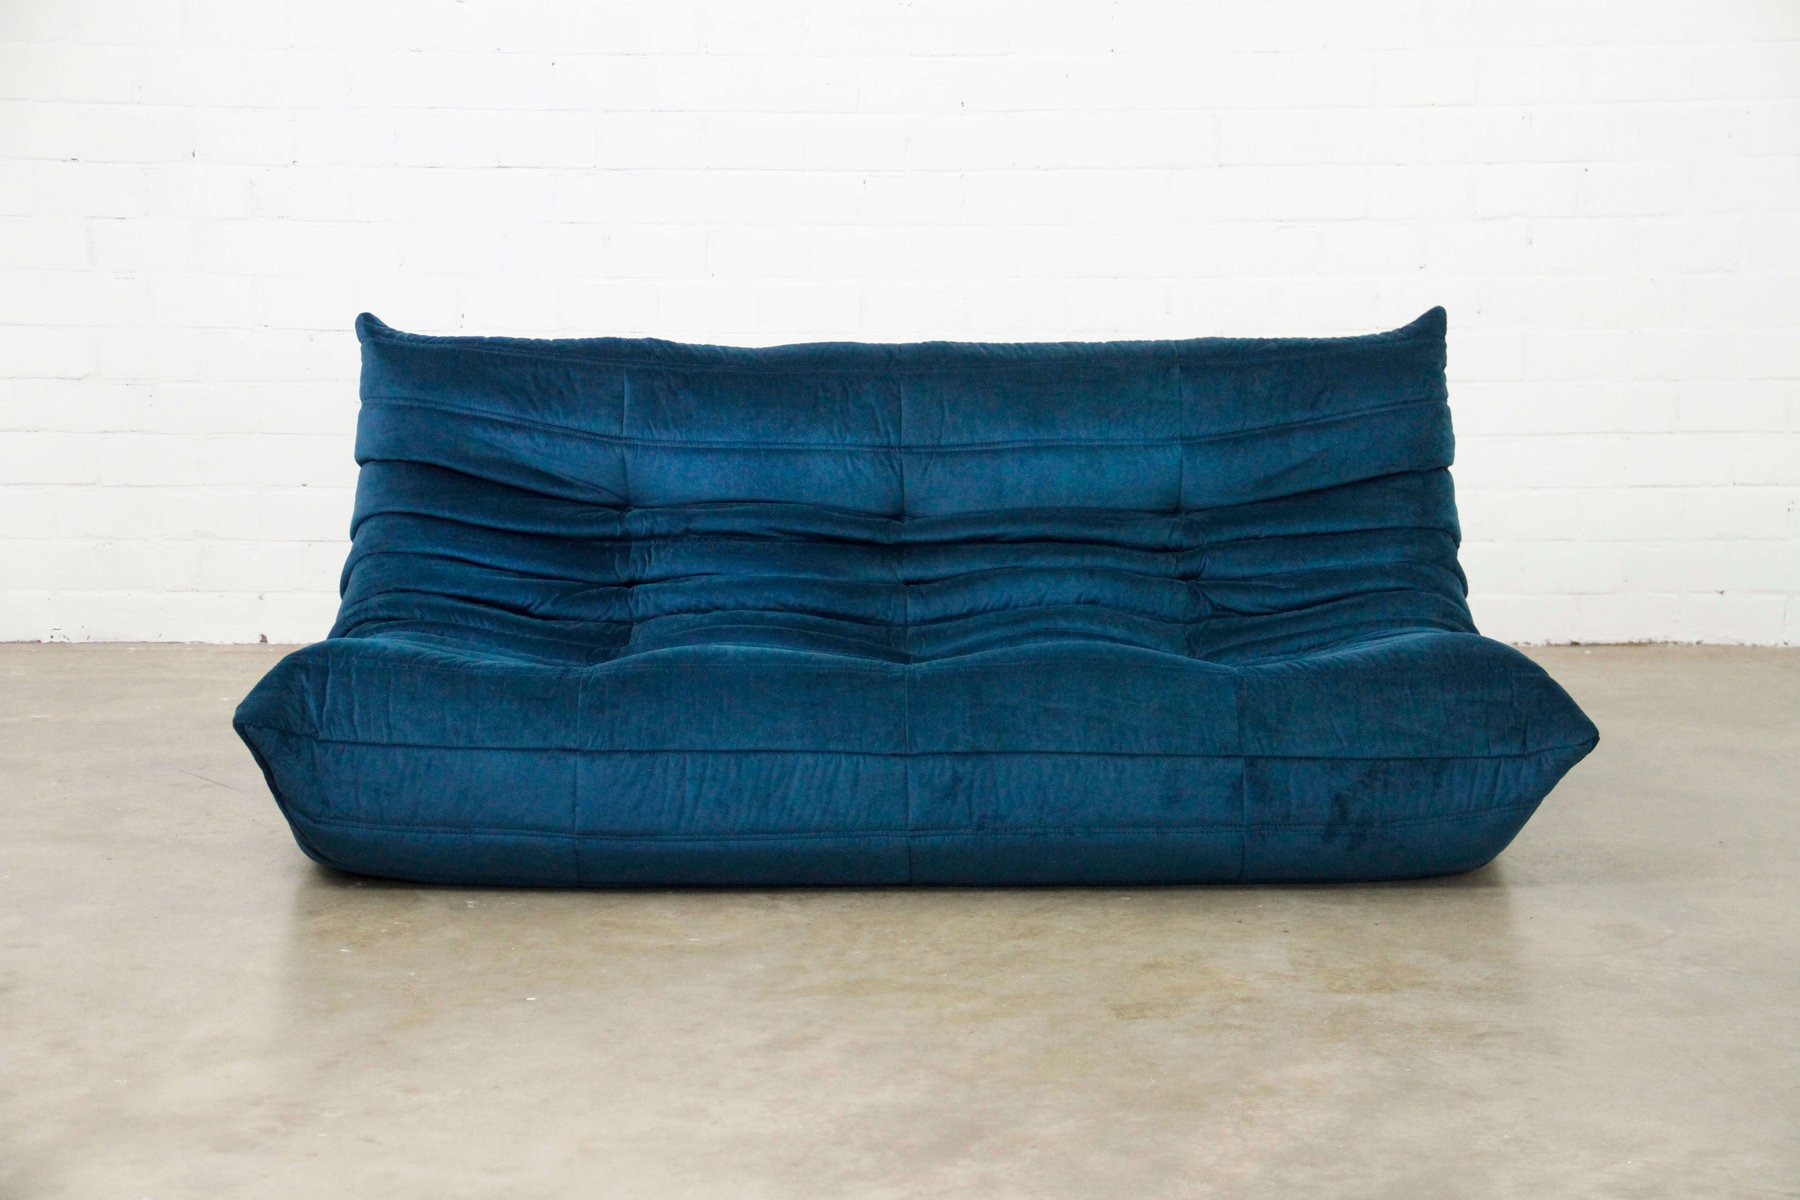 Big Sofa Petrol Togo Sofa In Petrol Blue By Michel Ducaroy For Ligne Roset 1970s